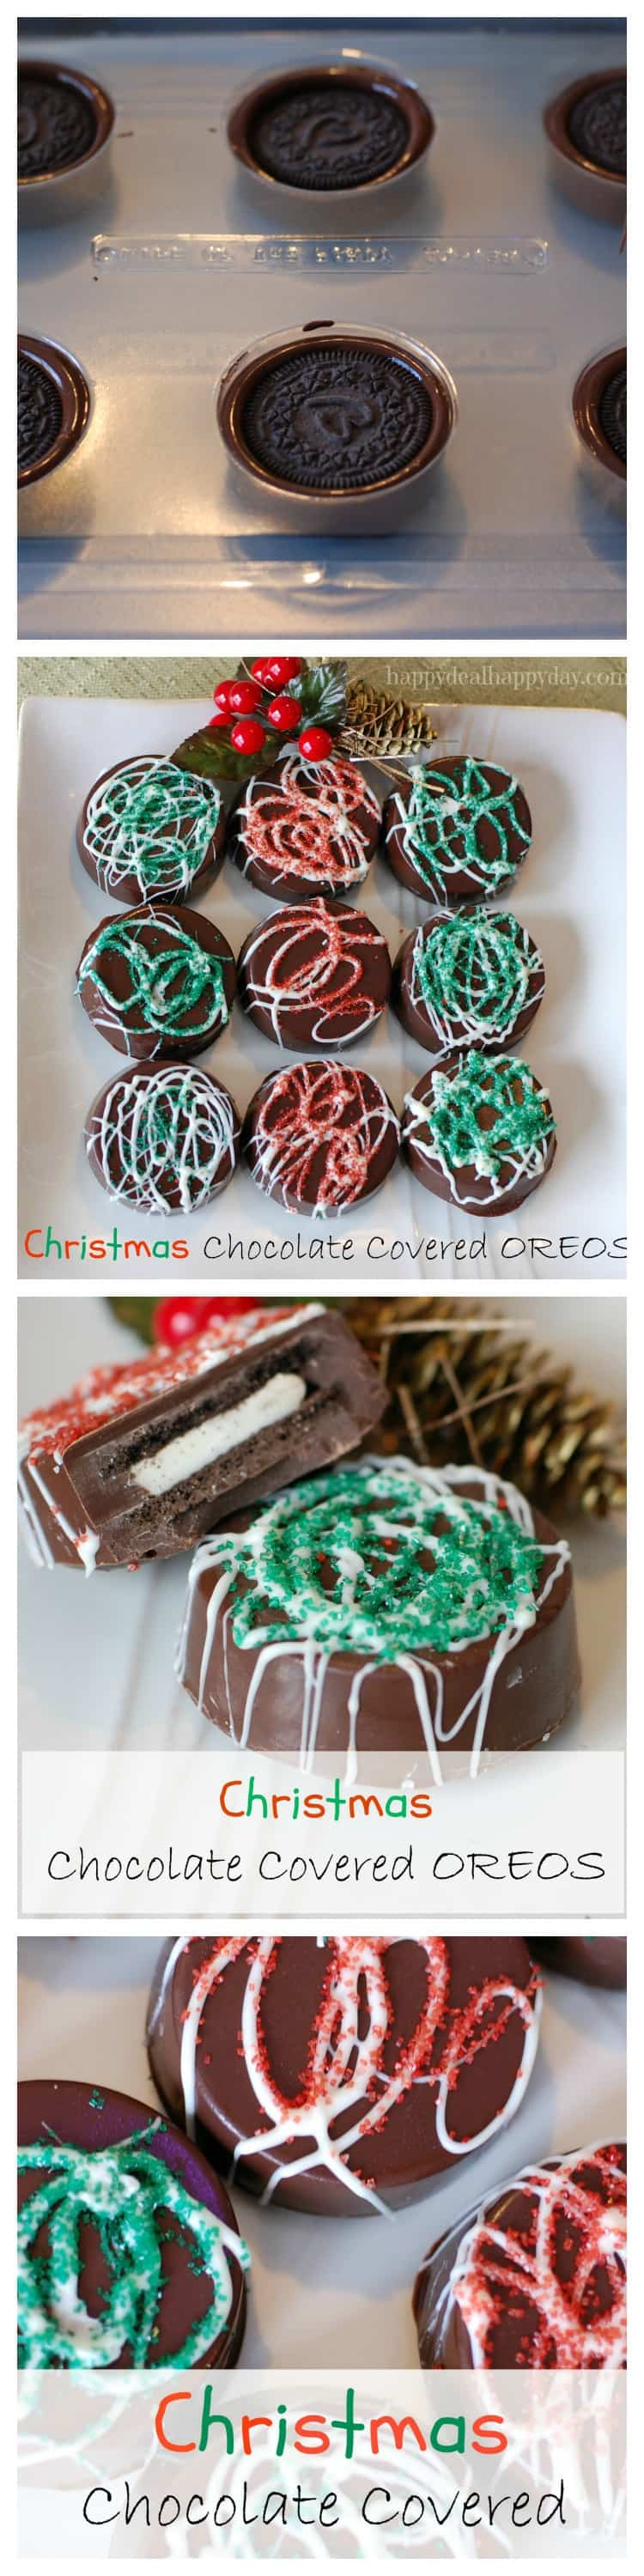 Chocolate Covered Oreos - Christmas Version!  Here is a great step-by-step tutorial to make these beautiful and rich cookies!  They look much more difficult to make than they are - very easy to do and make a great gift!!!!   LOL check out the toddler photo bomb in this one!